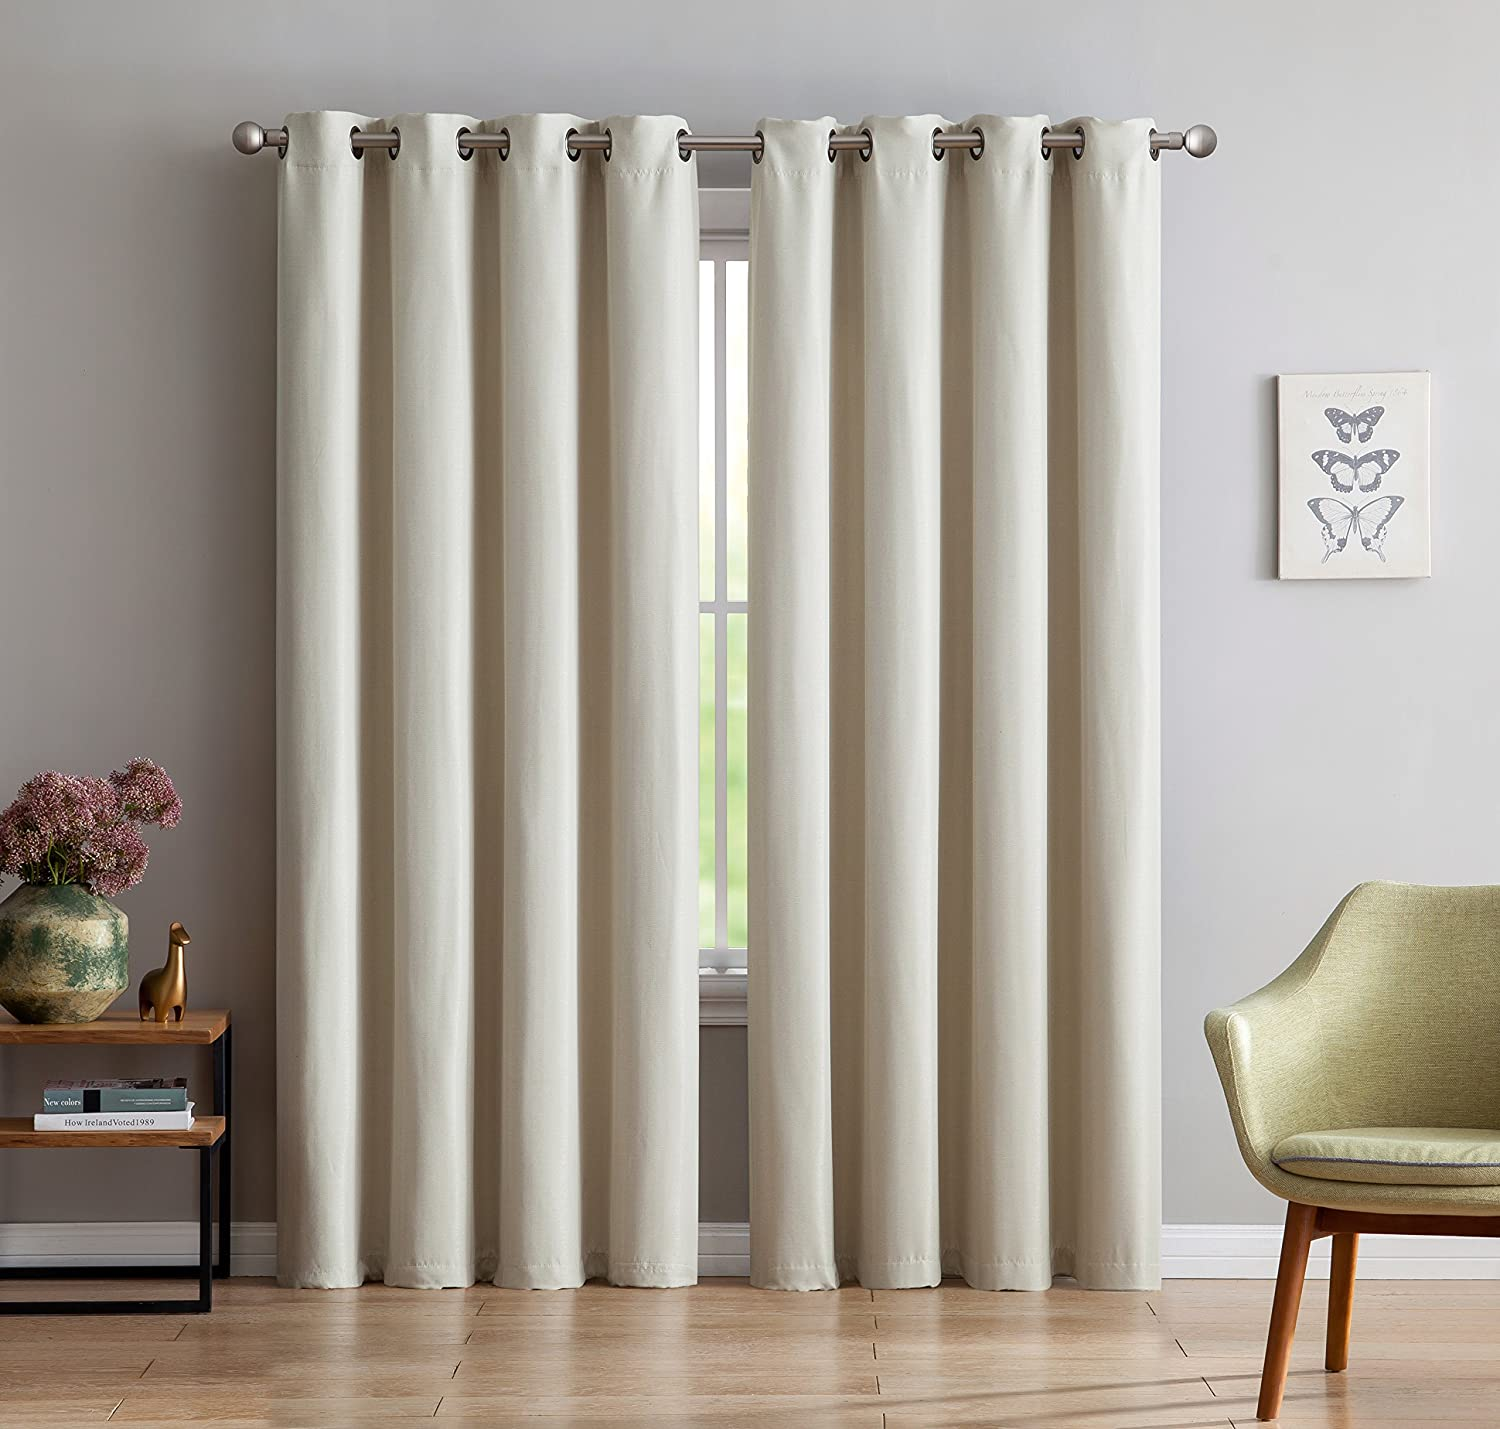 strong noise soundproof reducing curtain reduction soundproofing vision blocking sound window curtains absorbing excellent